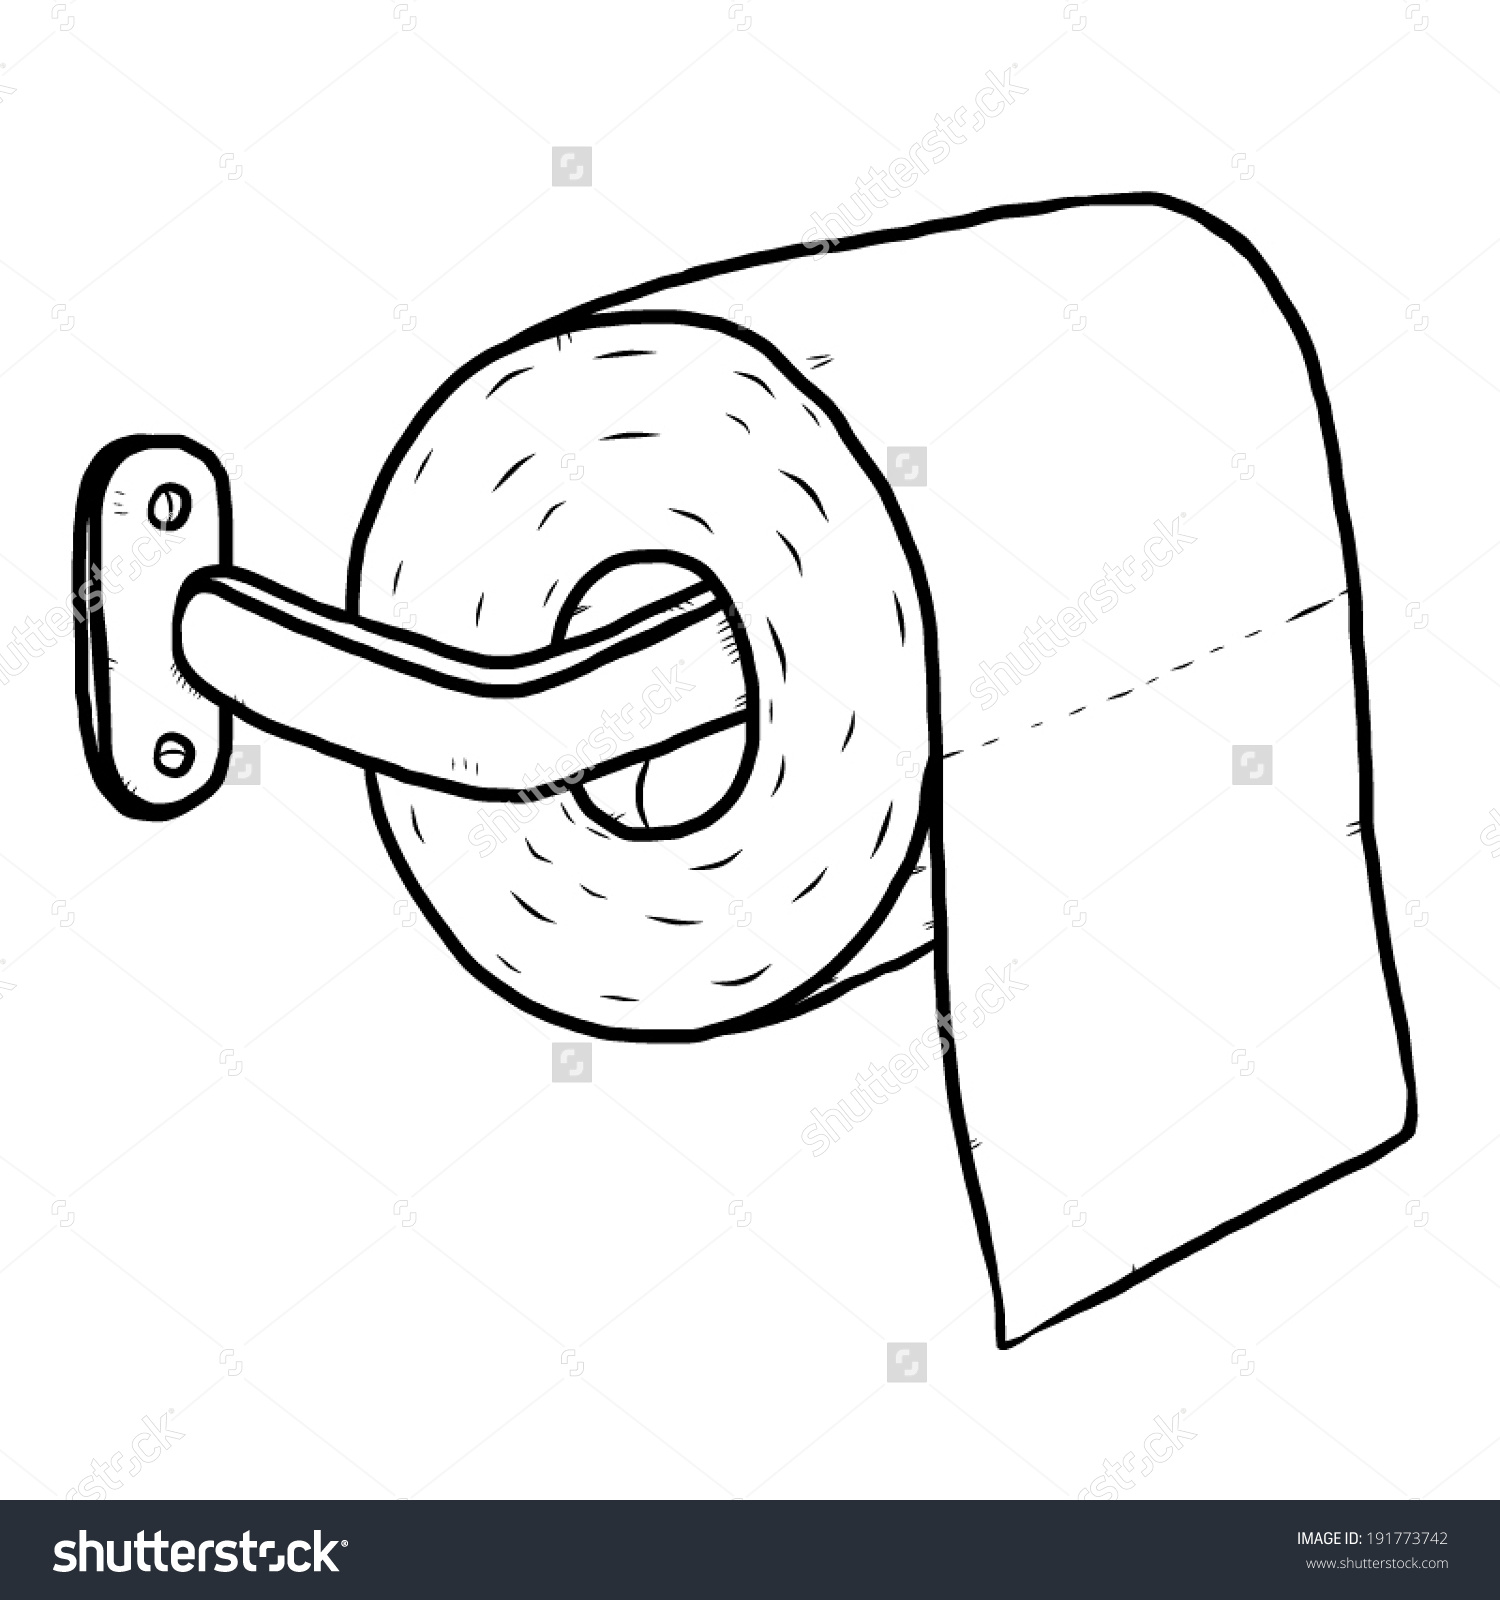 Toilet paper clipart black and white.